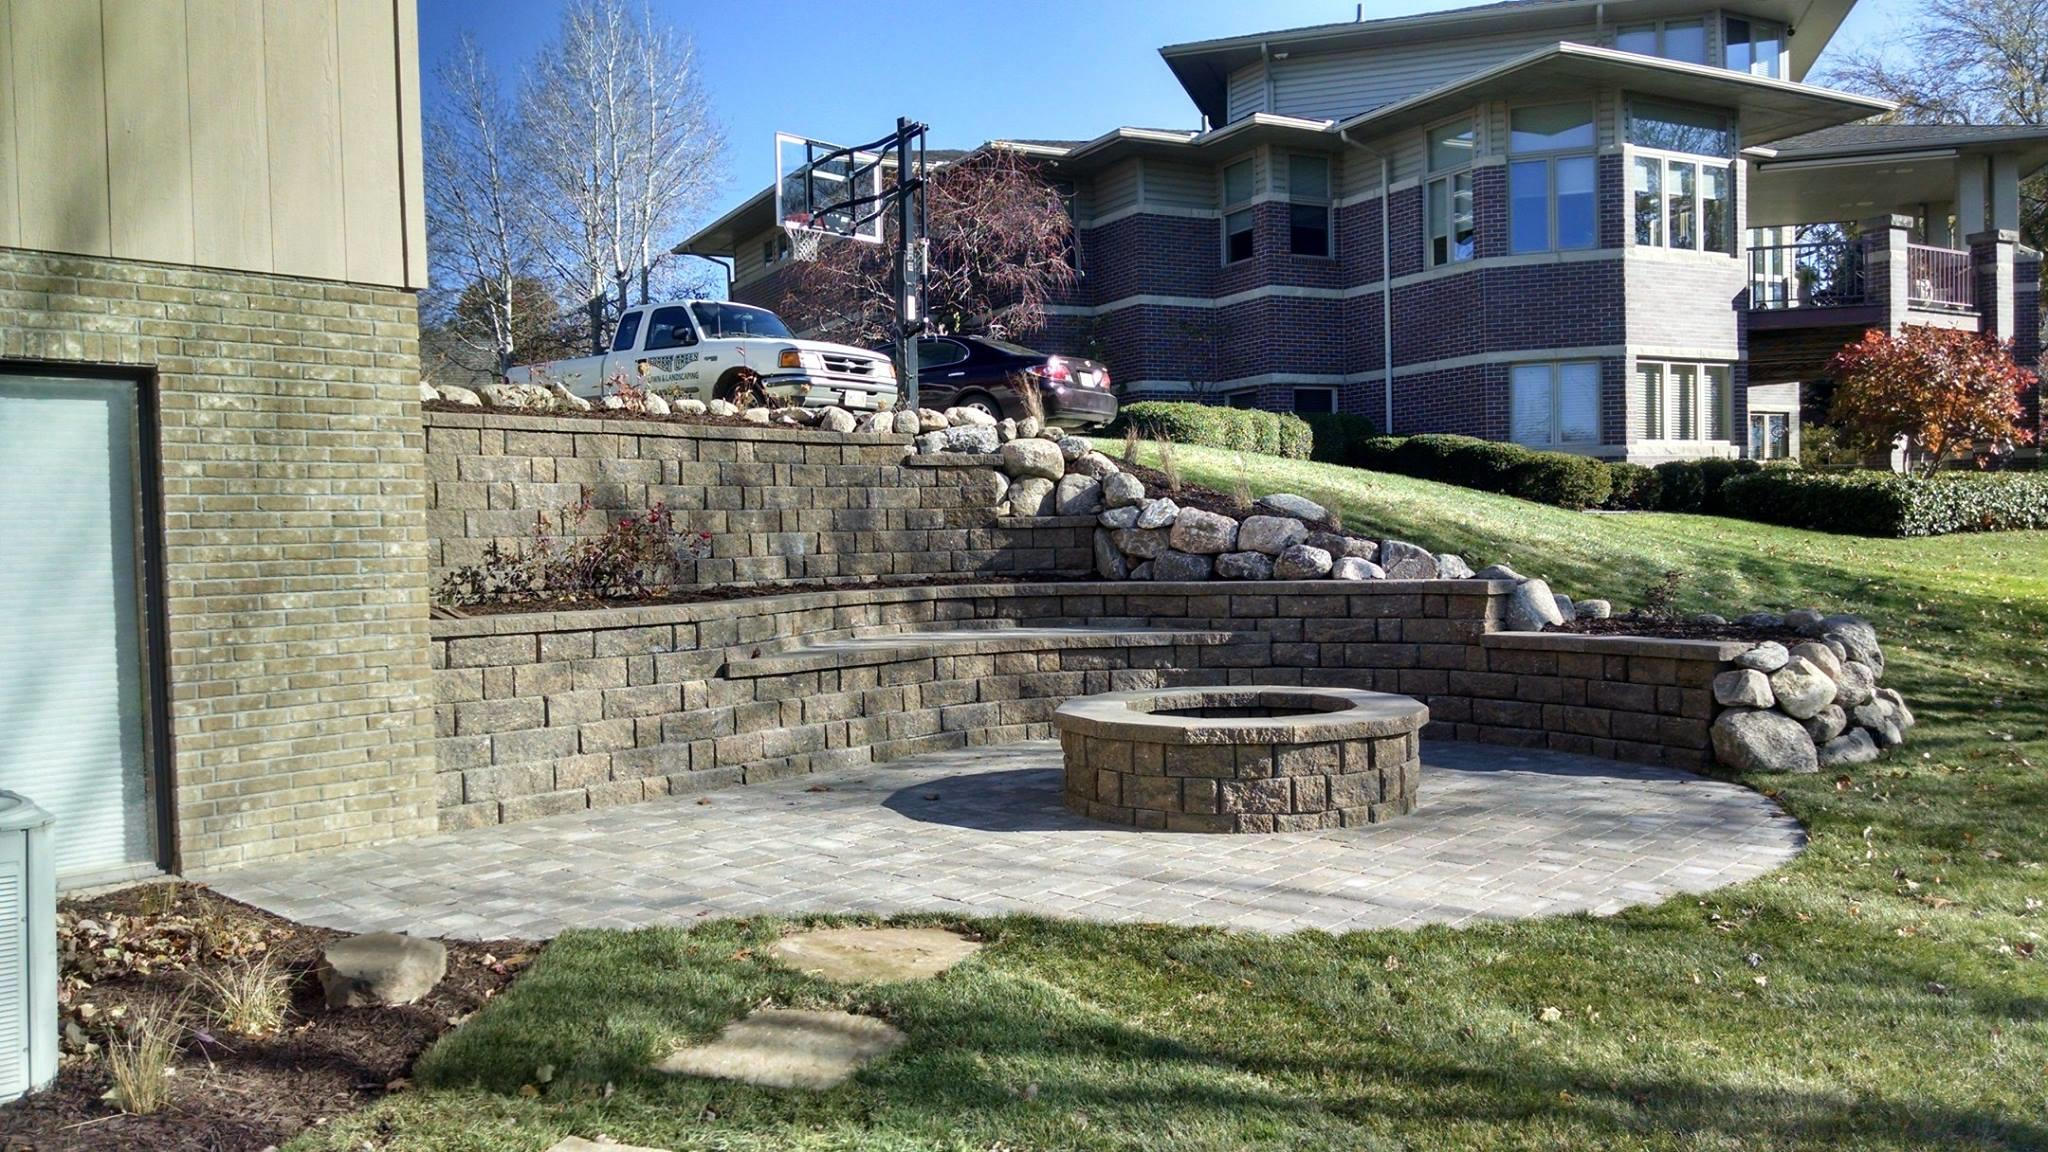 Forest Green Lawn & Landscaping image 11